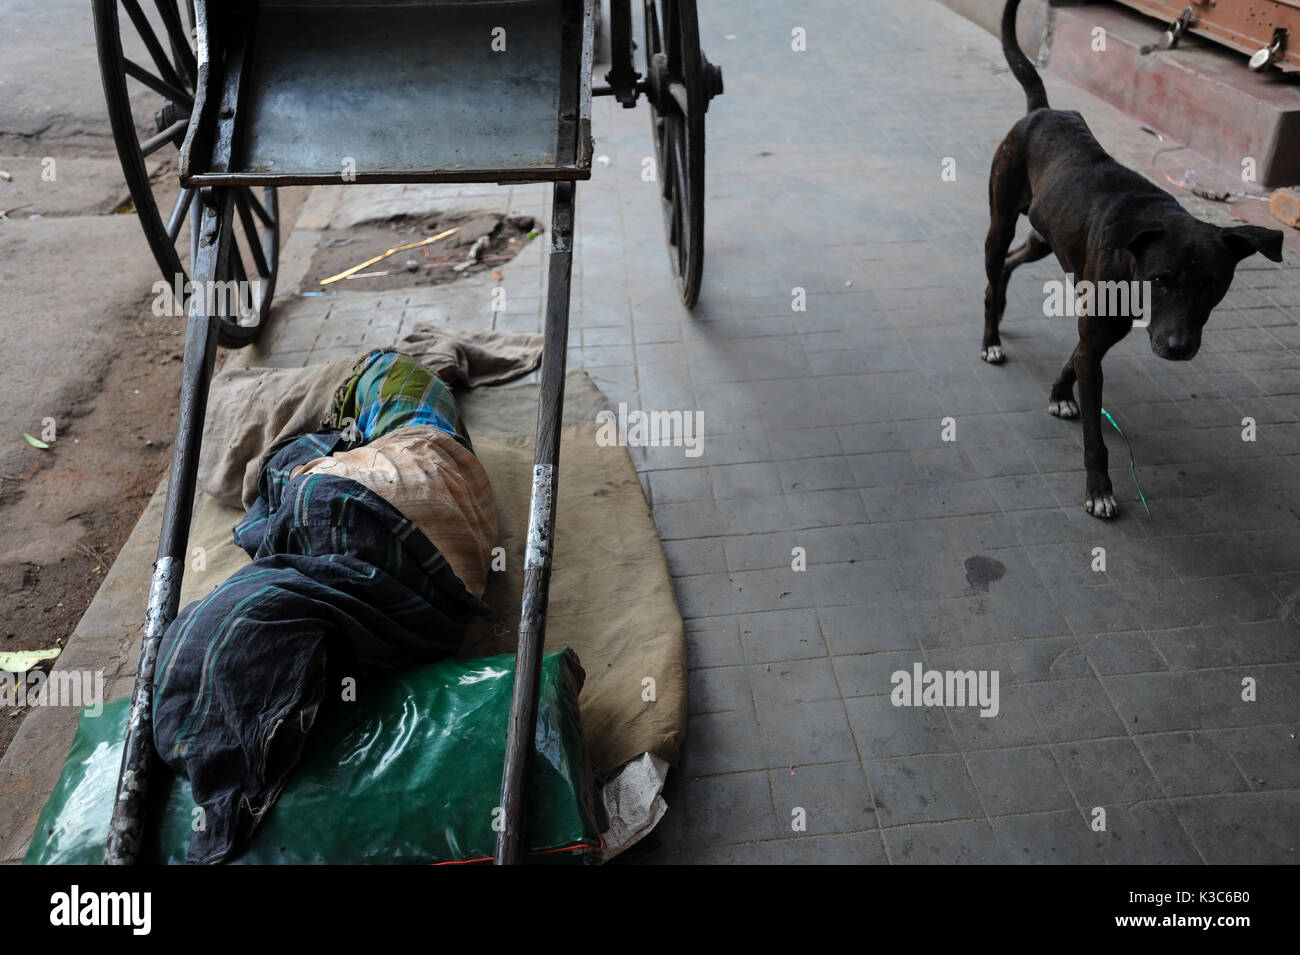 04.12.2011, Kolkata, West Bengal, India, Asia - A rickshaw puller sleeps next to his wooden rickshaw at a roadside - Stock Image